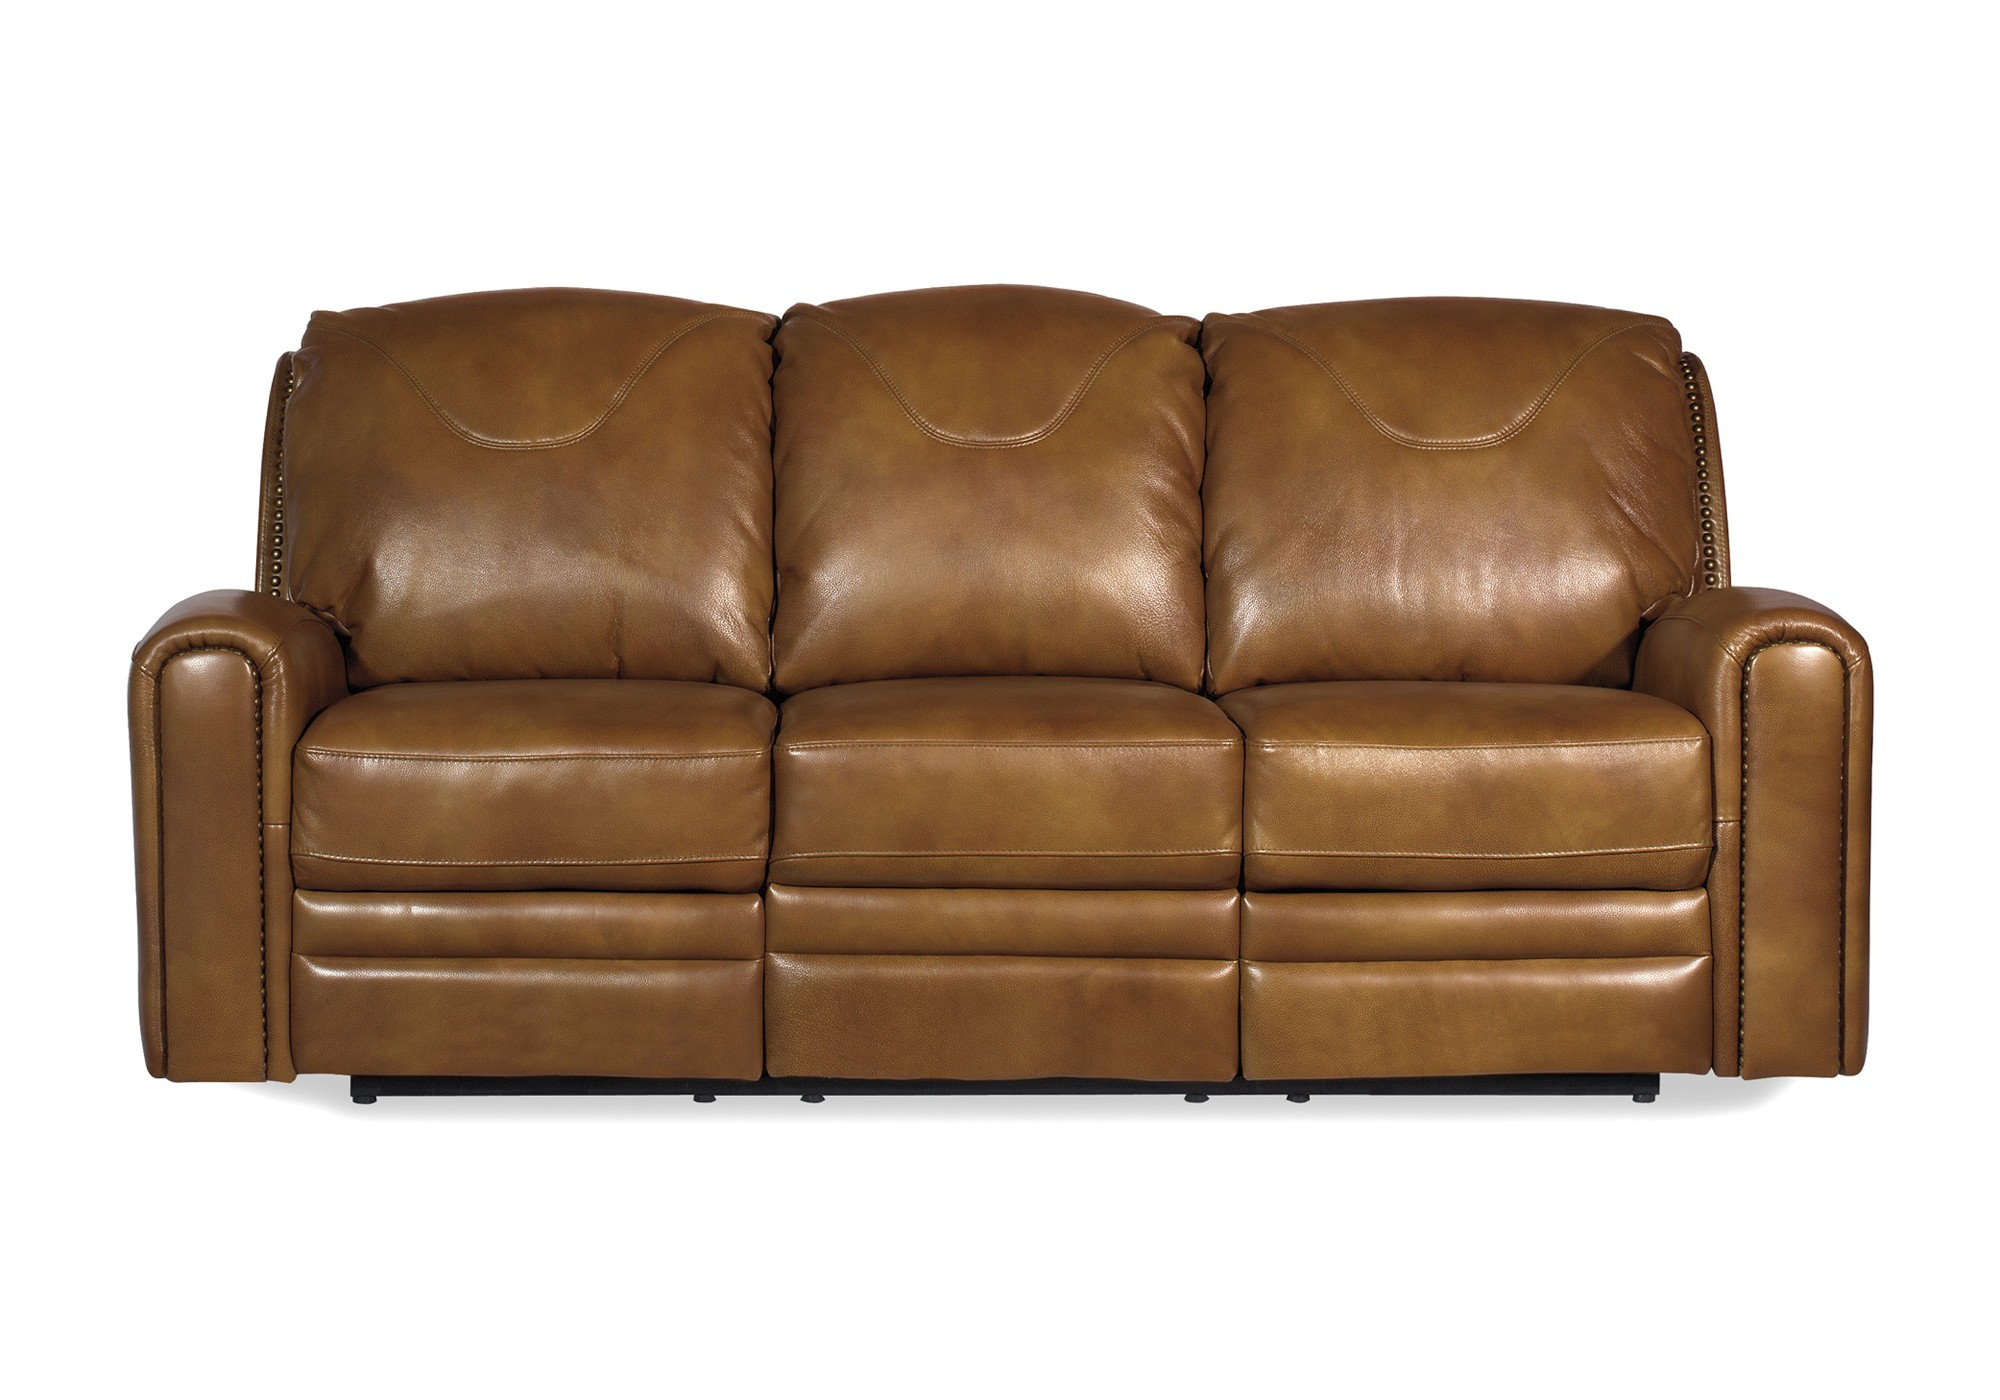 2000x1400px 7 Gorgeous Saddle Leather Sofa Picture in Furniture